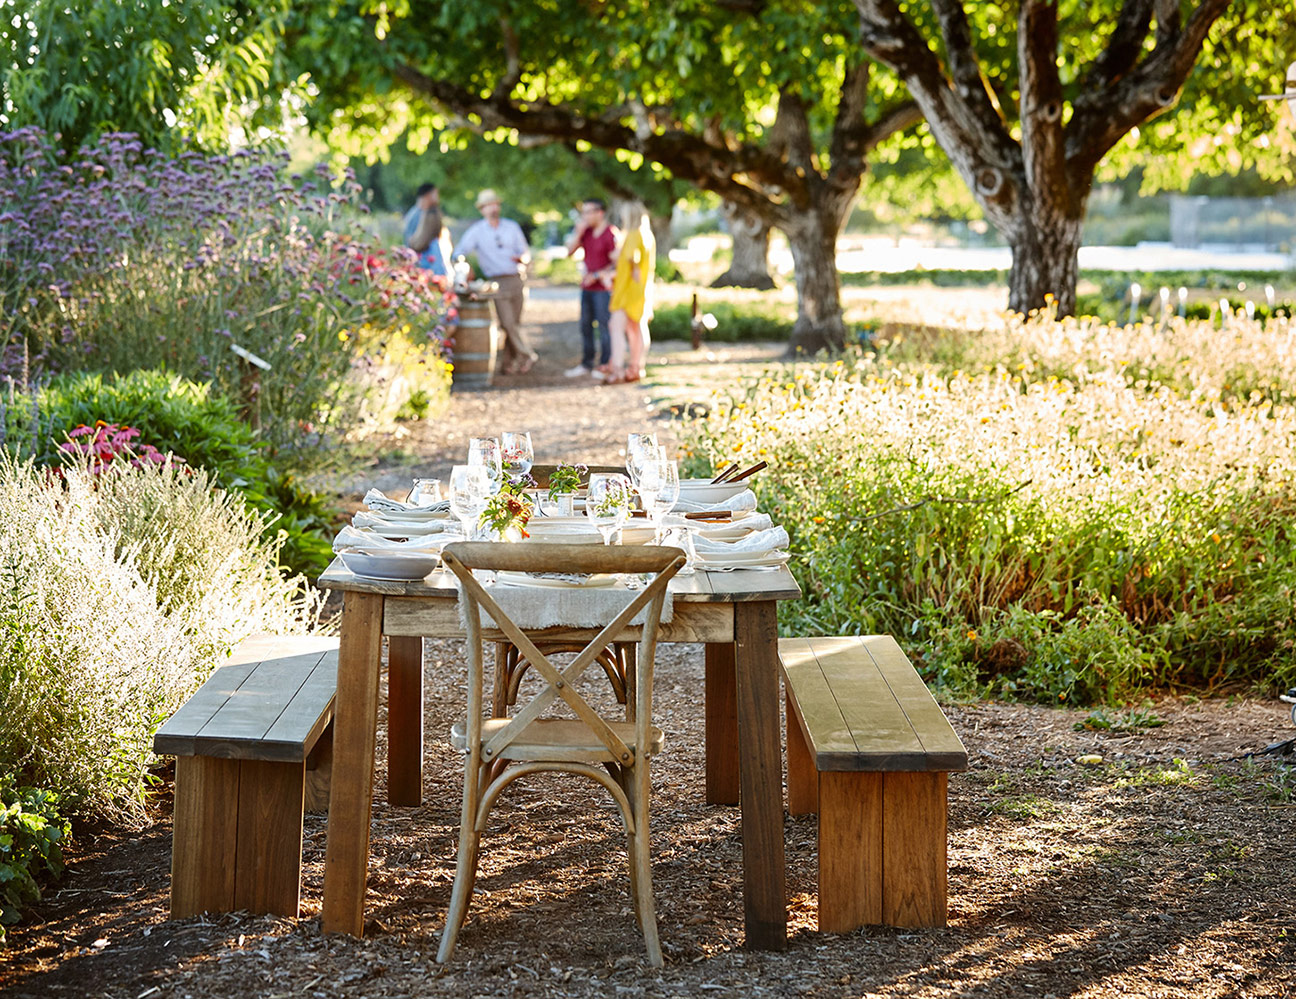 AlanCampbellPhotography, sonoma county lifestyle dining outdoors